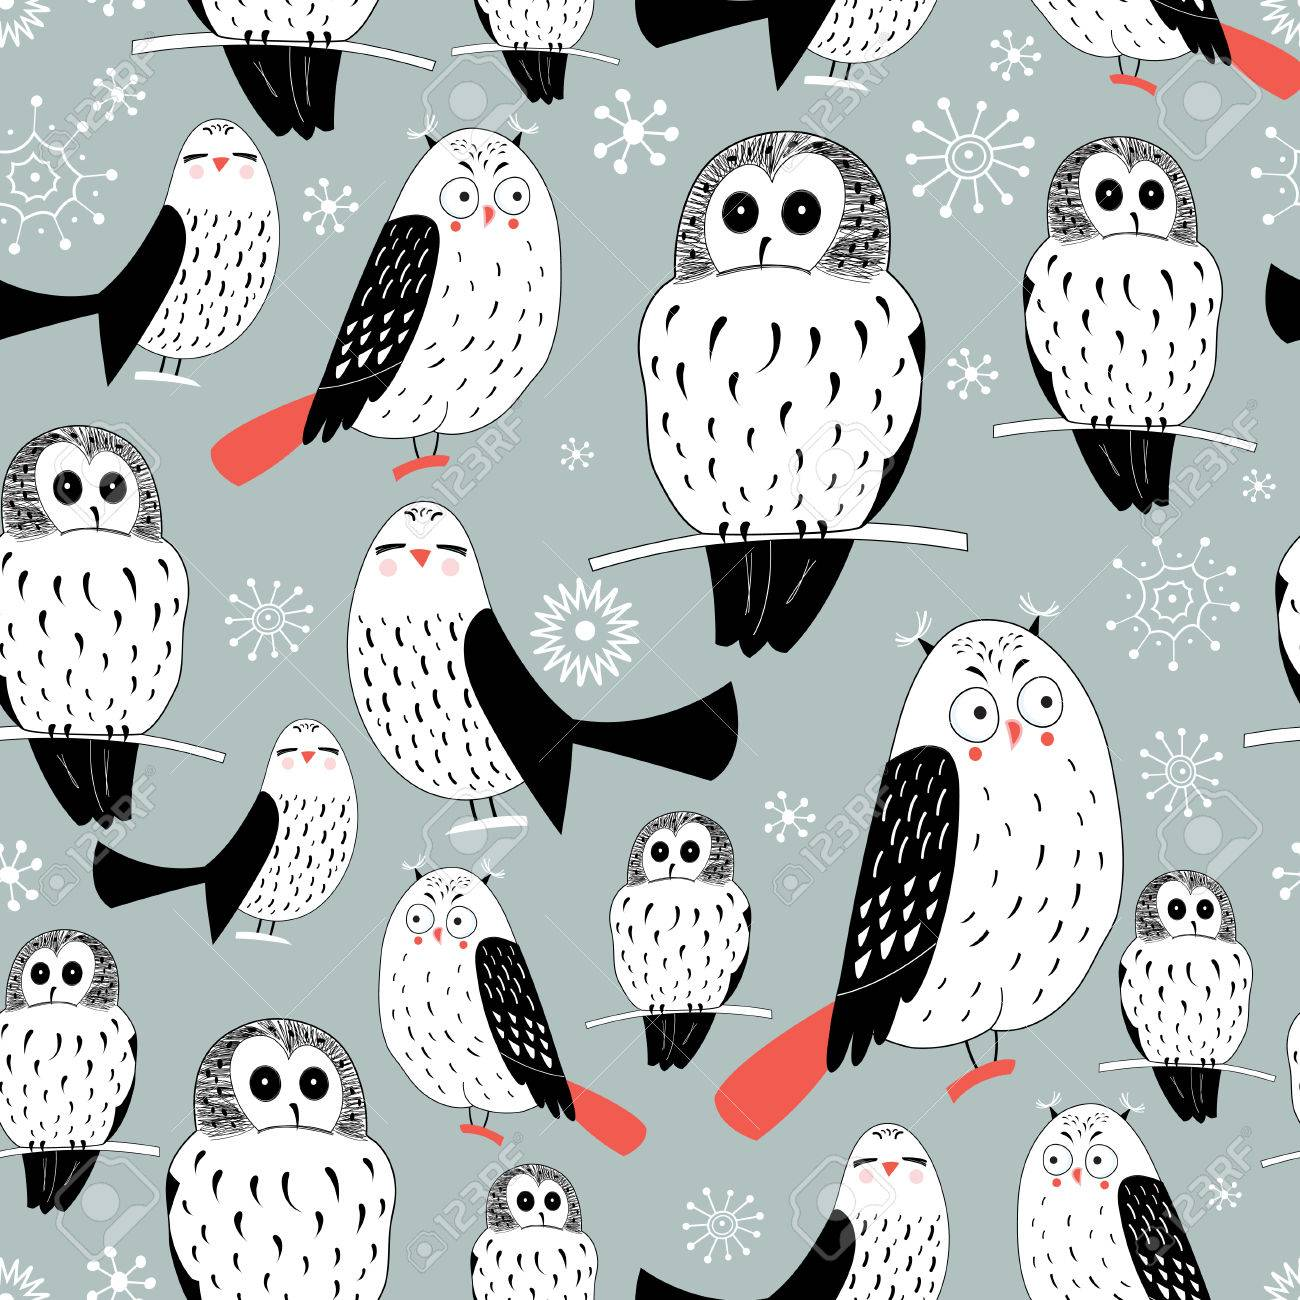 Seamless graphic pattern of white owls on a gray background with snowflakes - 24077502